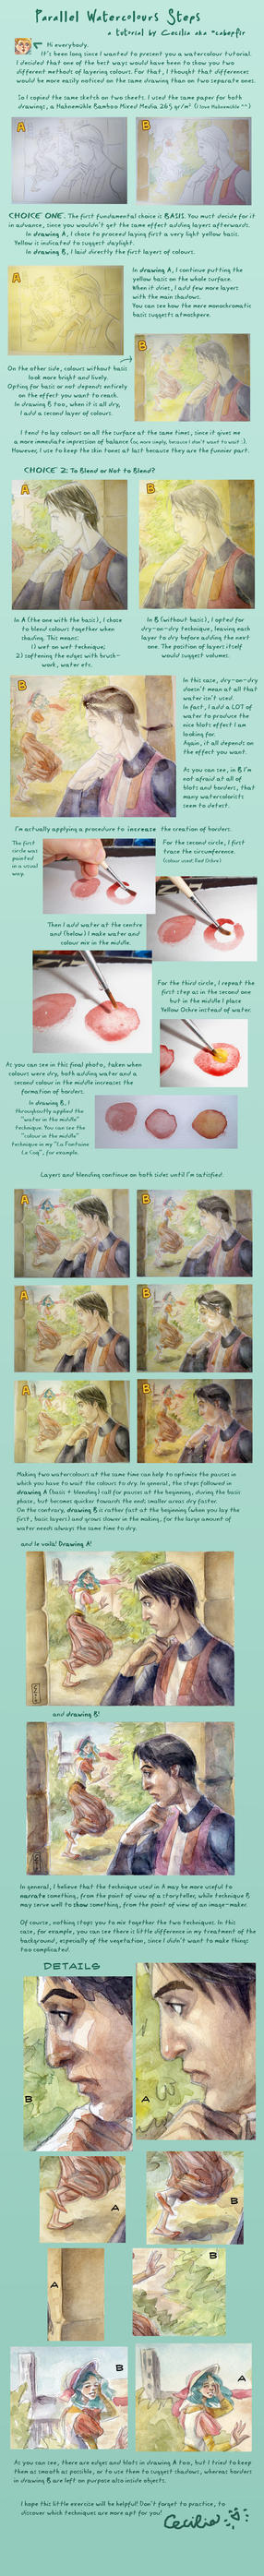 Parallel Watercolour Tutorial by cabepfir